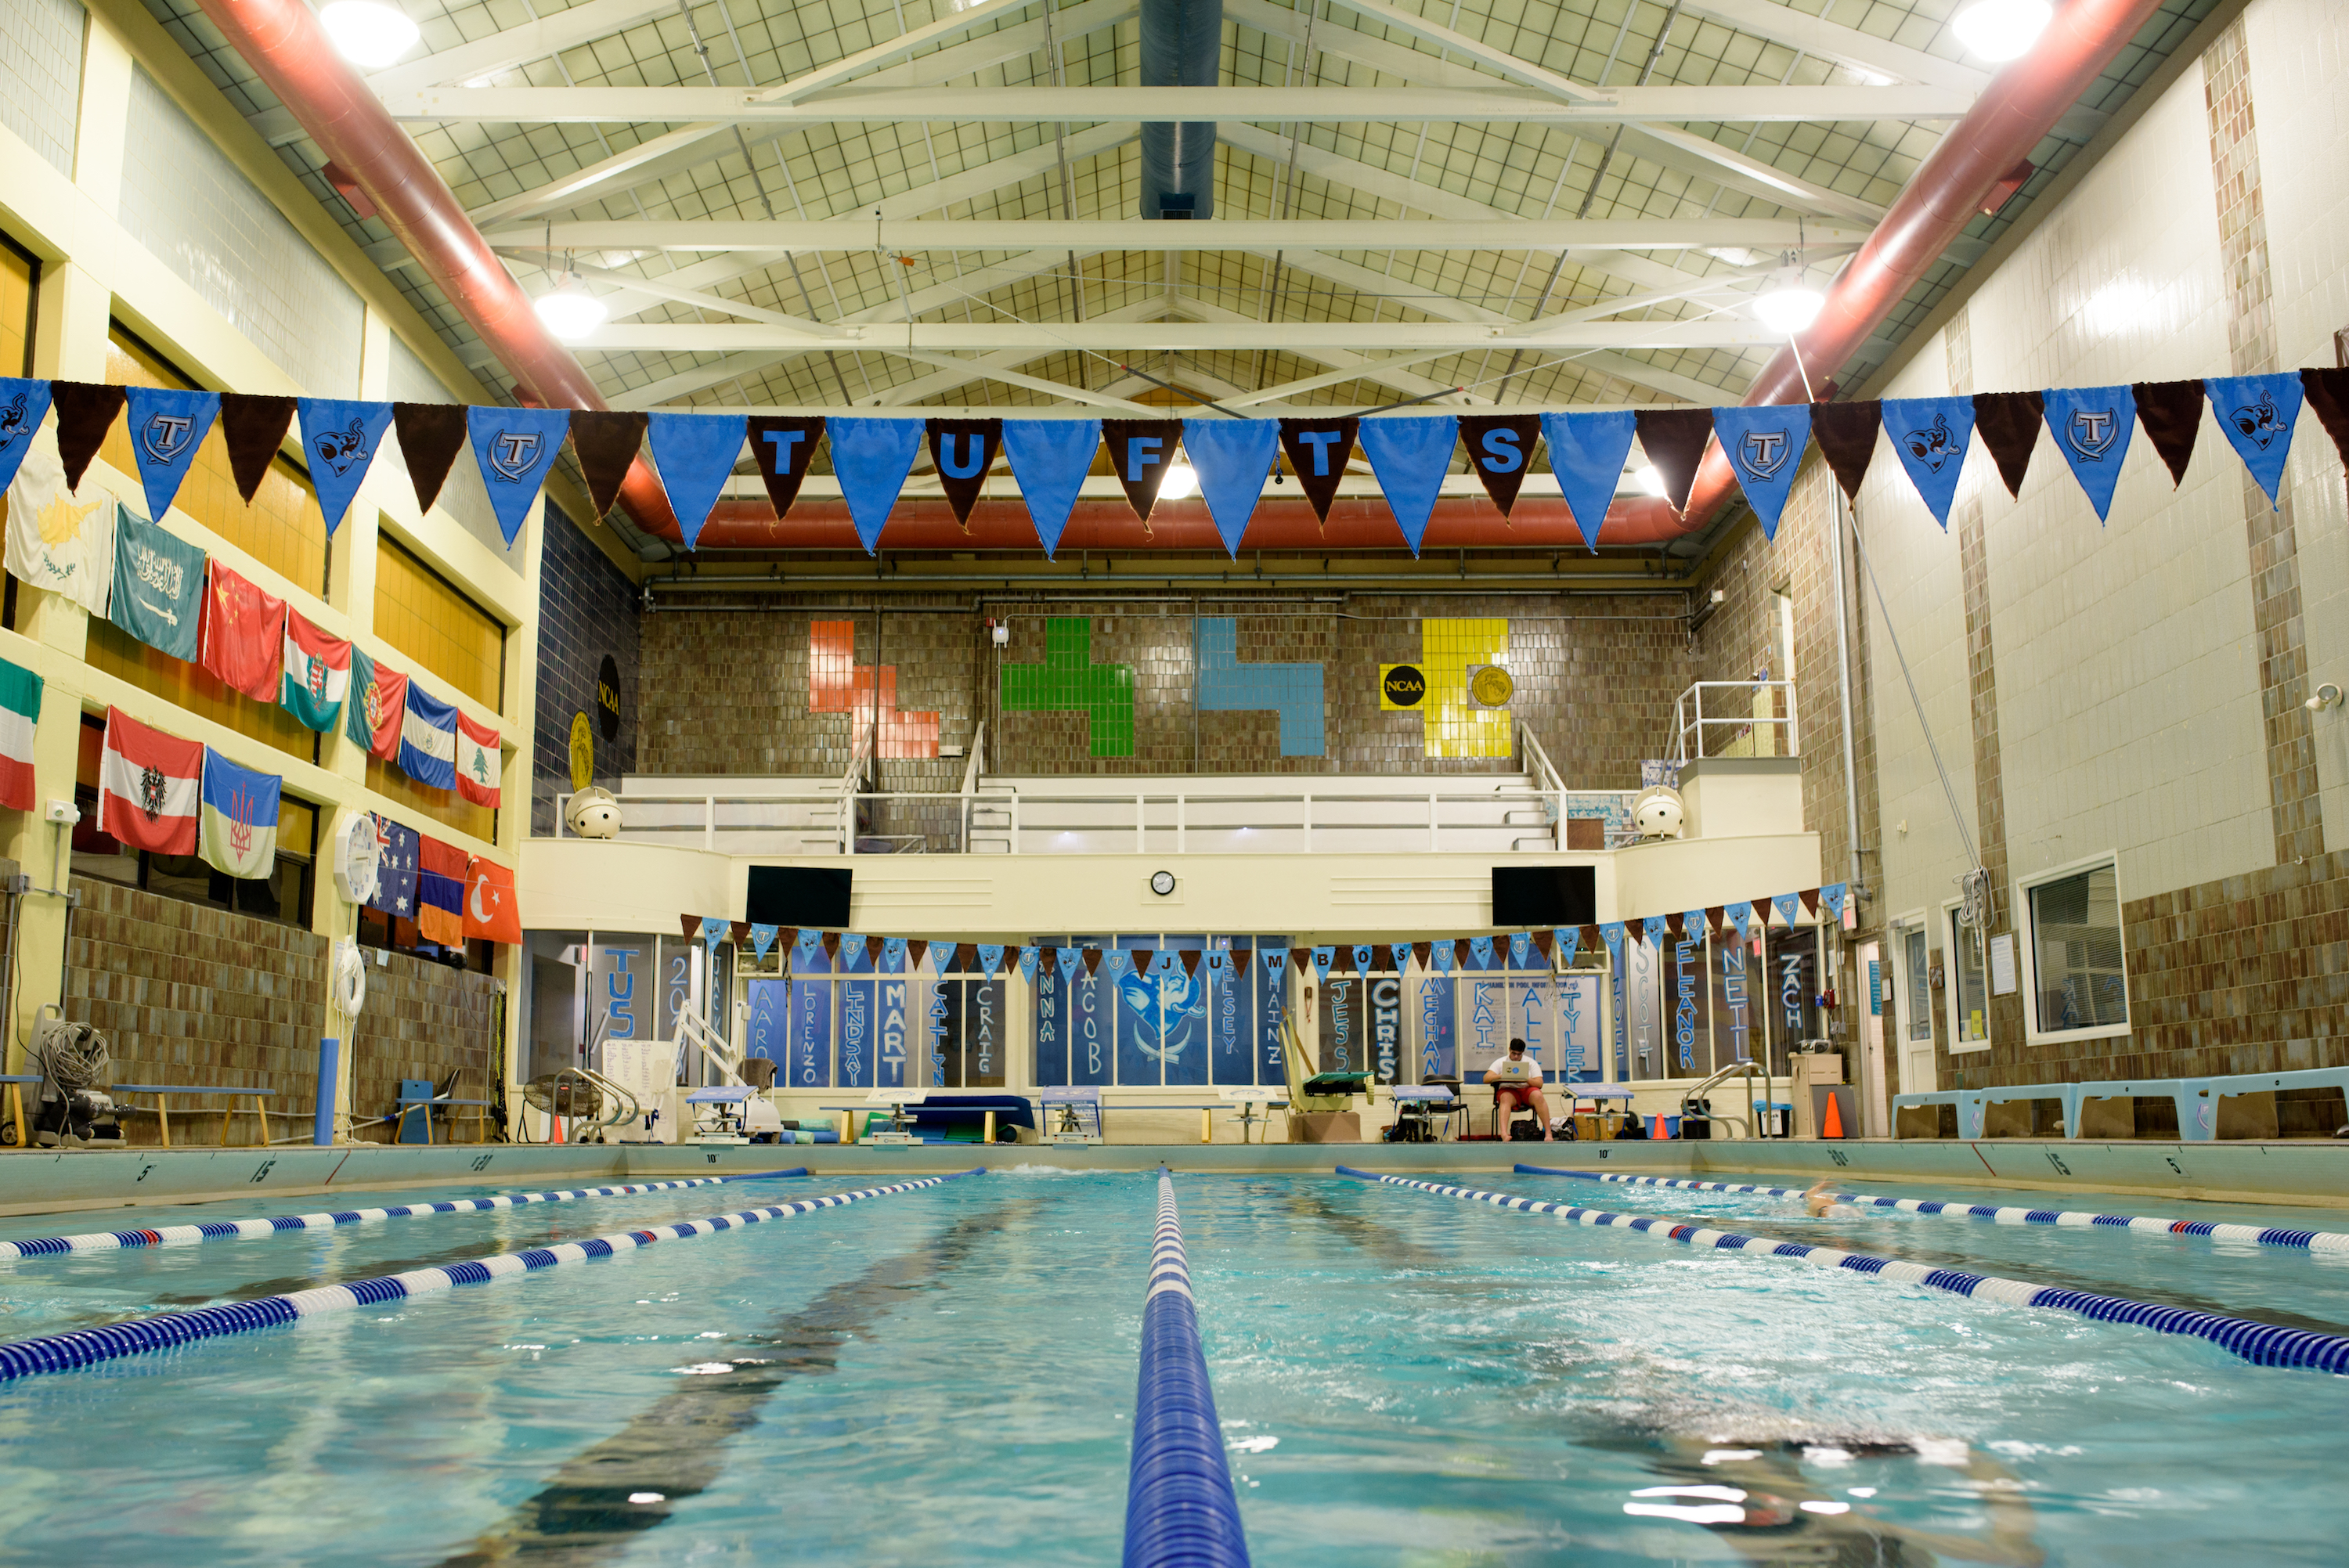 Administrators Share Tentative Plans For New Swimming Pool